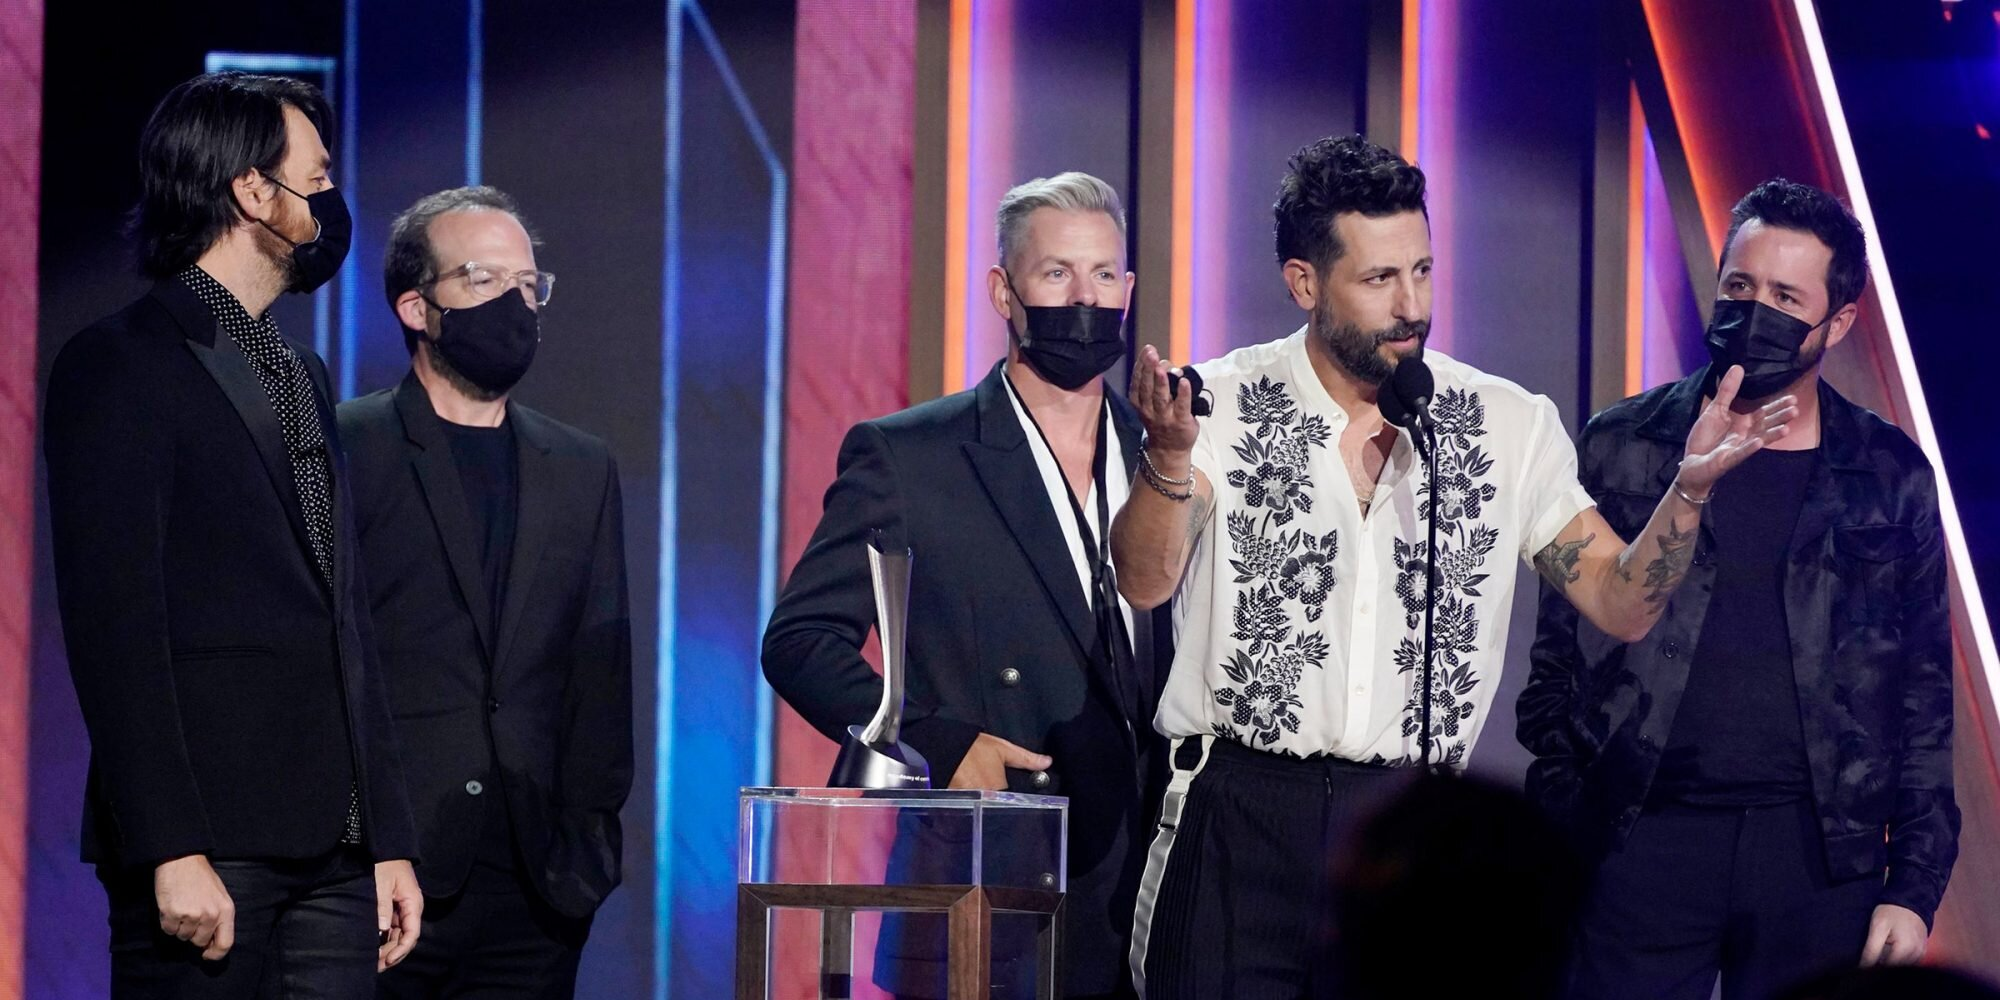 Old Dominion Wins ACM Group of the Year for Fourth Year in a Row: 'We're Just Very Fortunate'